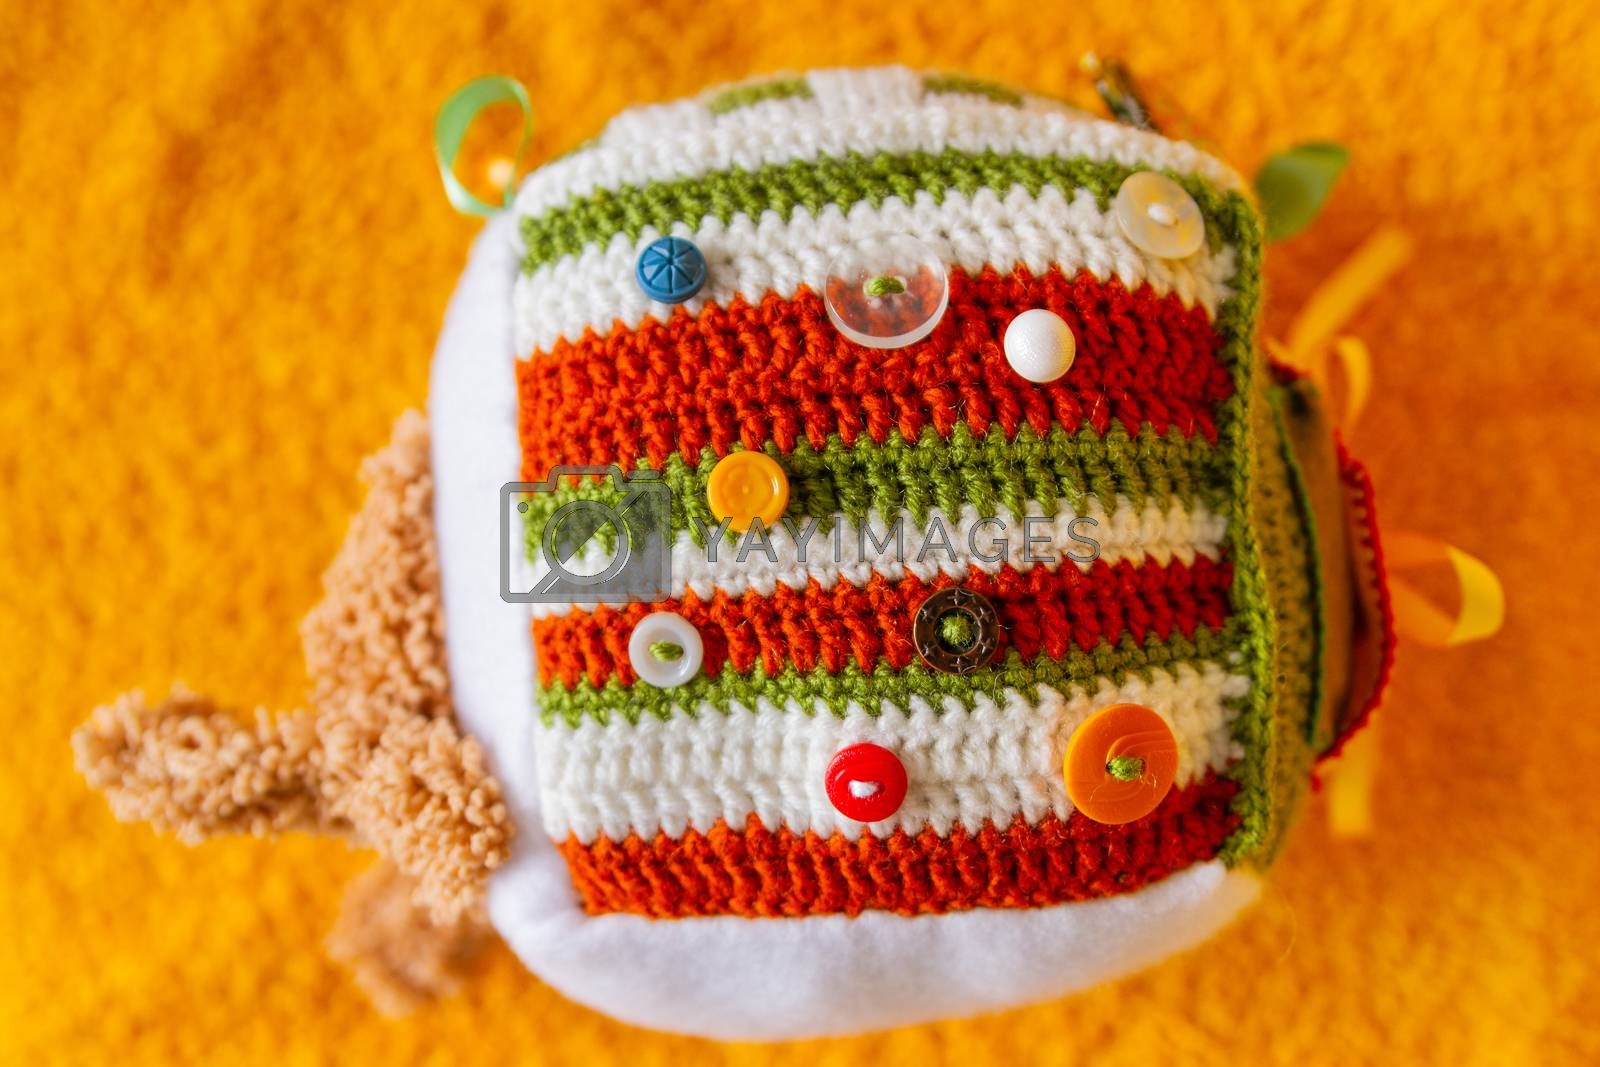 Colorful hand made toy for toddlers and babies. Busy cube. Soft baby block made of fabric to develop skills and fine motor skills. Taggie Cube. Montessori busy toy.